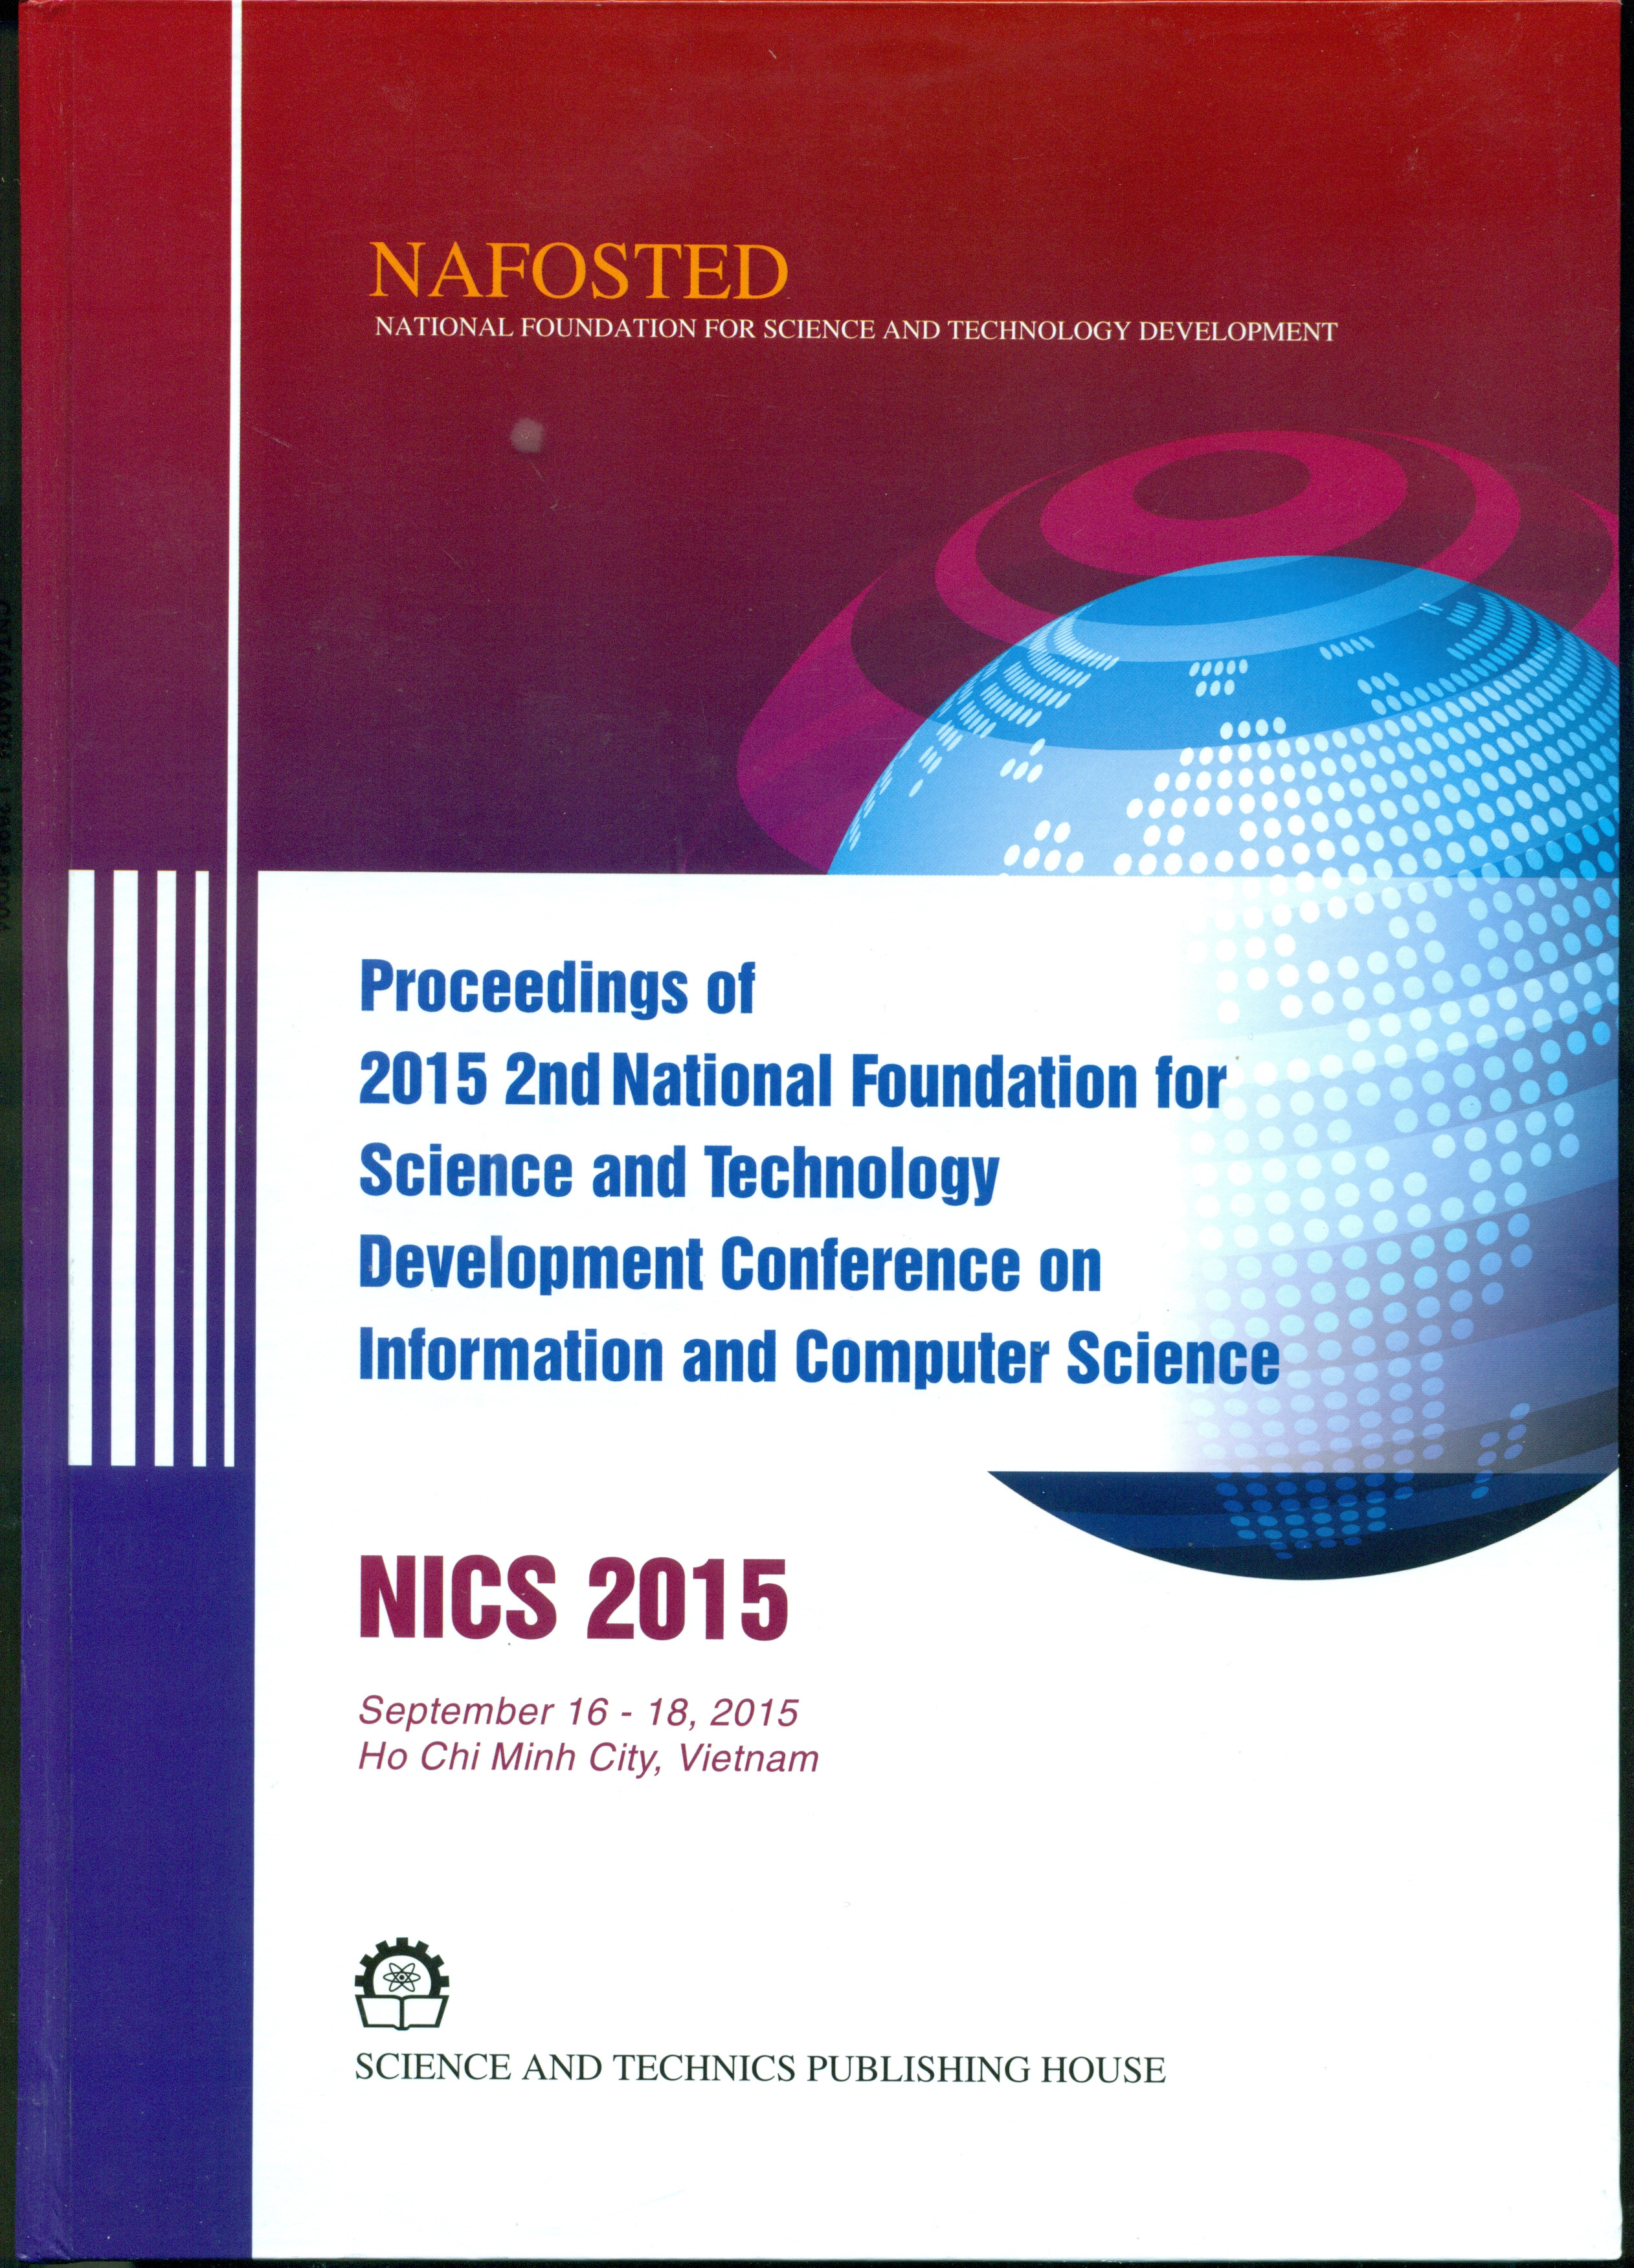 Proceedings of 2015 2nd National Foundtation for science and Technology Development Conference on Information and computer Science_0